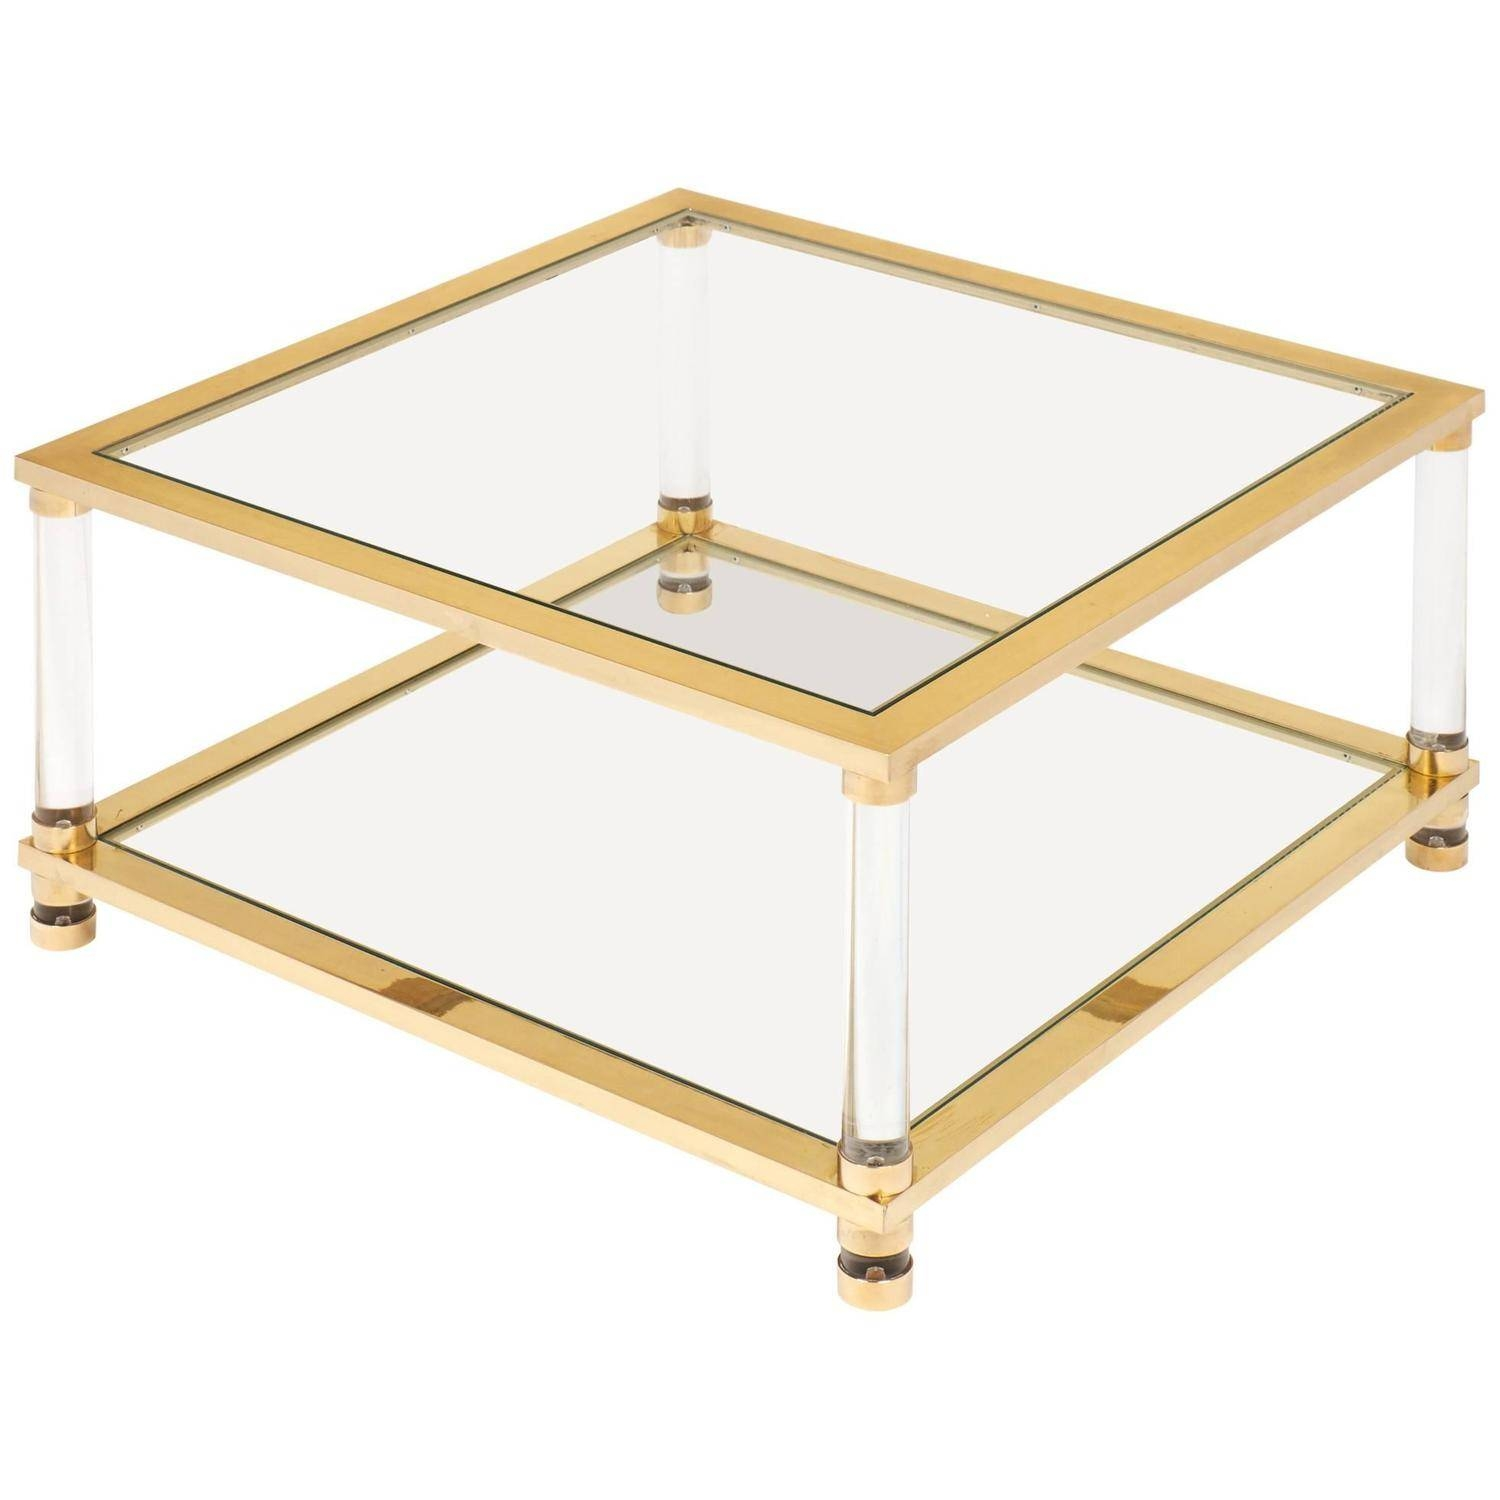 Coffee Table: Interesting Brass Glass Coffee Table Design Ideas pertaining to Antique Brass Glass Coffee Tables (Image 15 of 37)